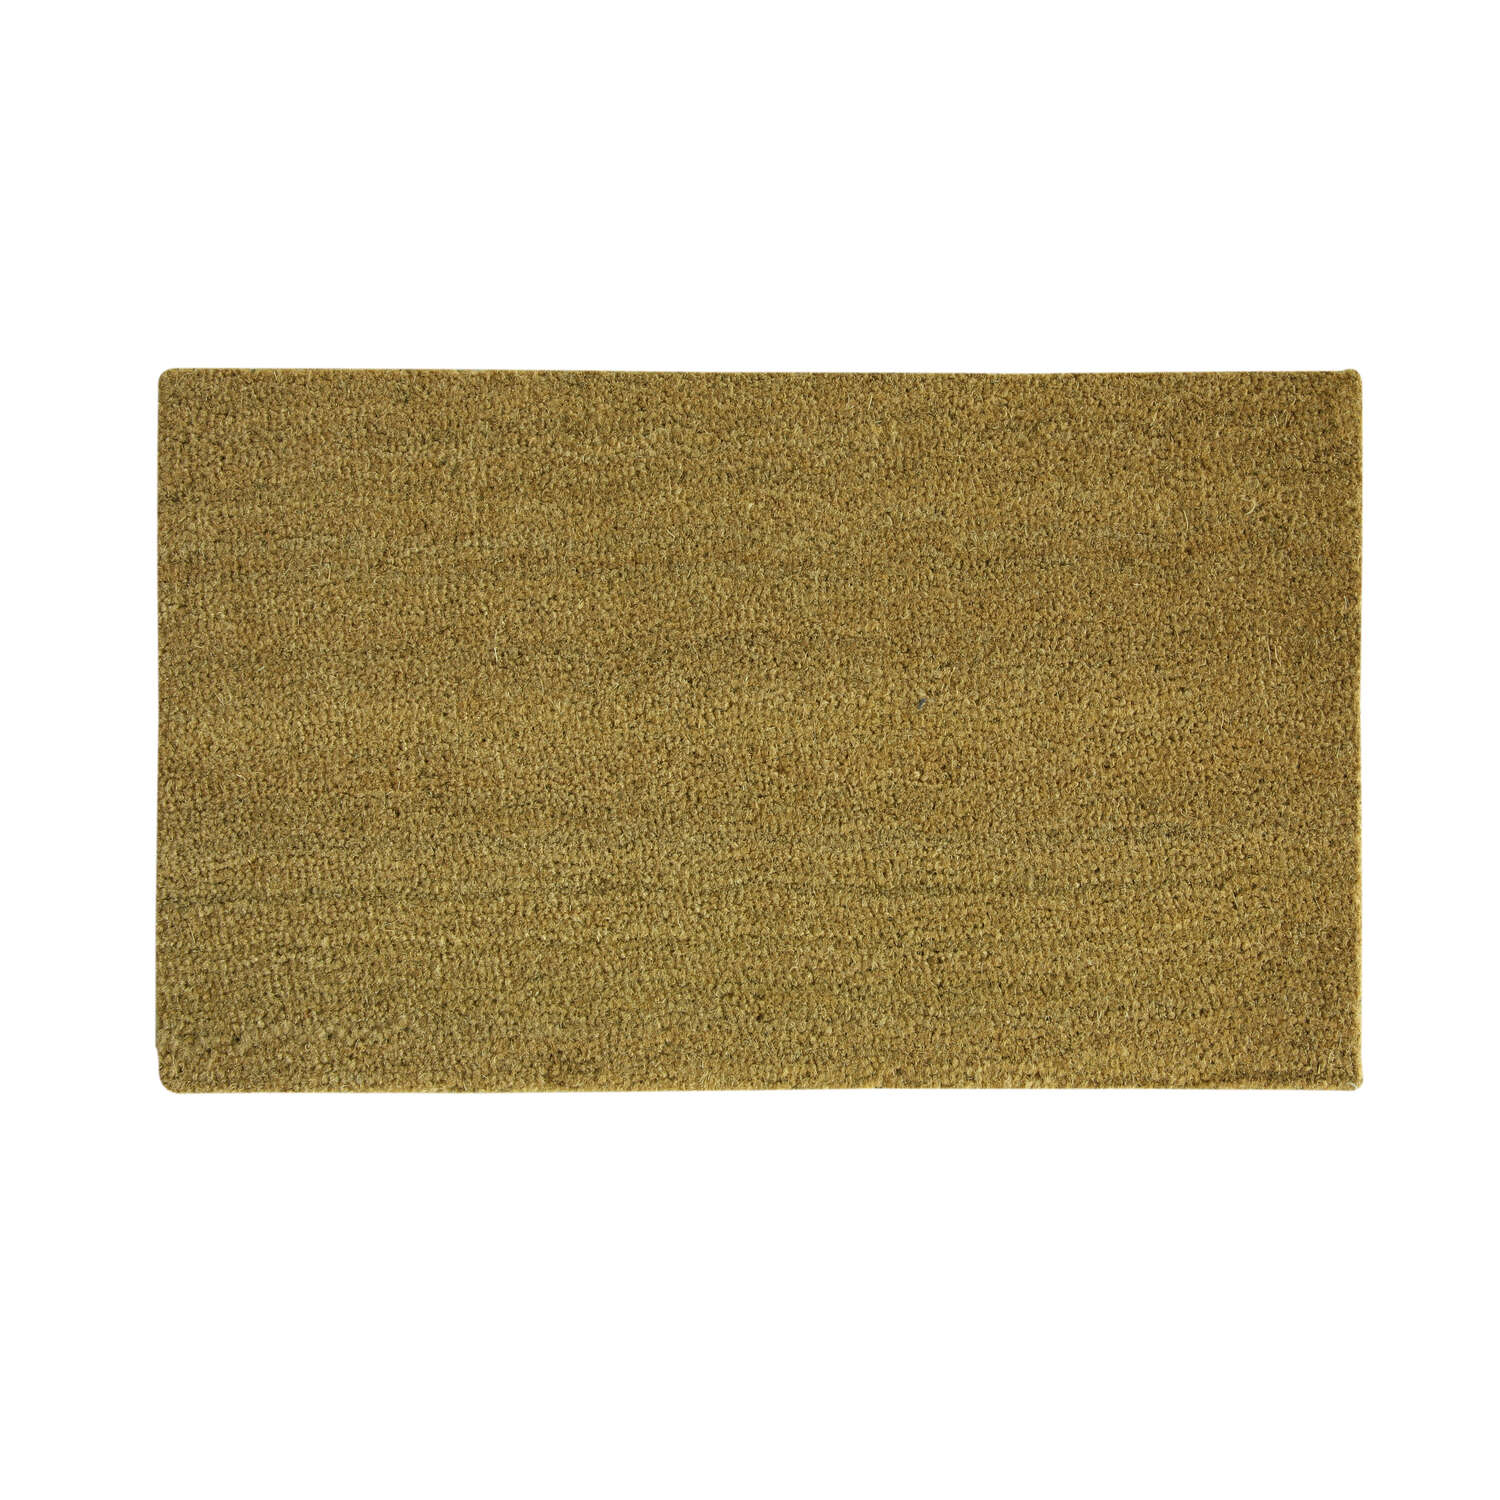 Sports Licensing Solutions  Blank  Tan  Coir  Nonslip Door Mat  36  L x 24  W